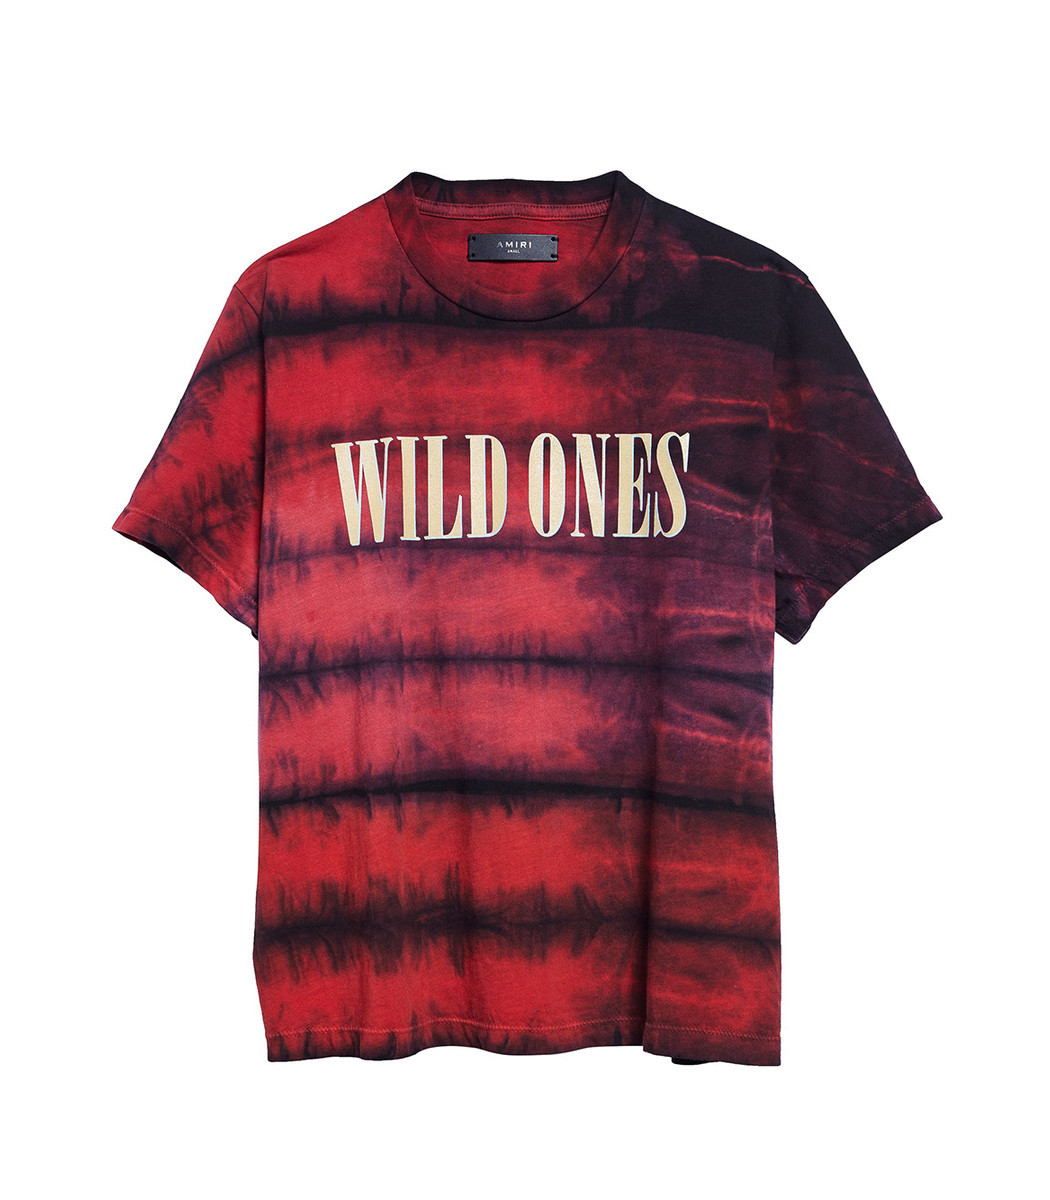 Amiri Wild Ones T-shirt